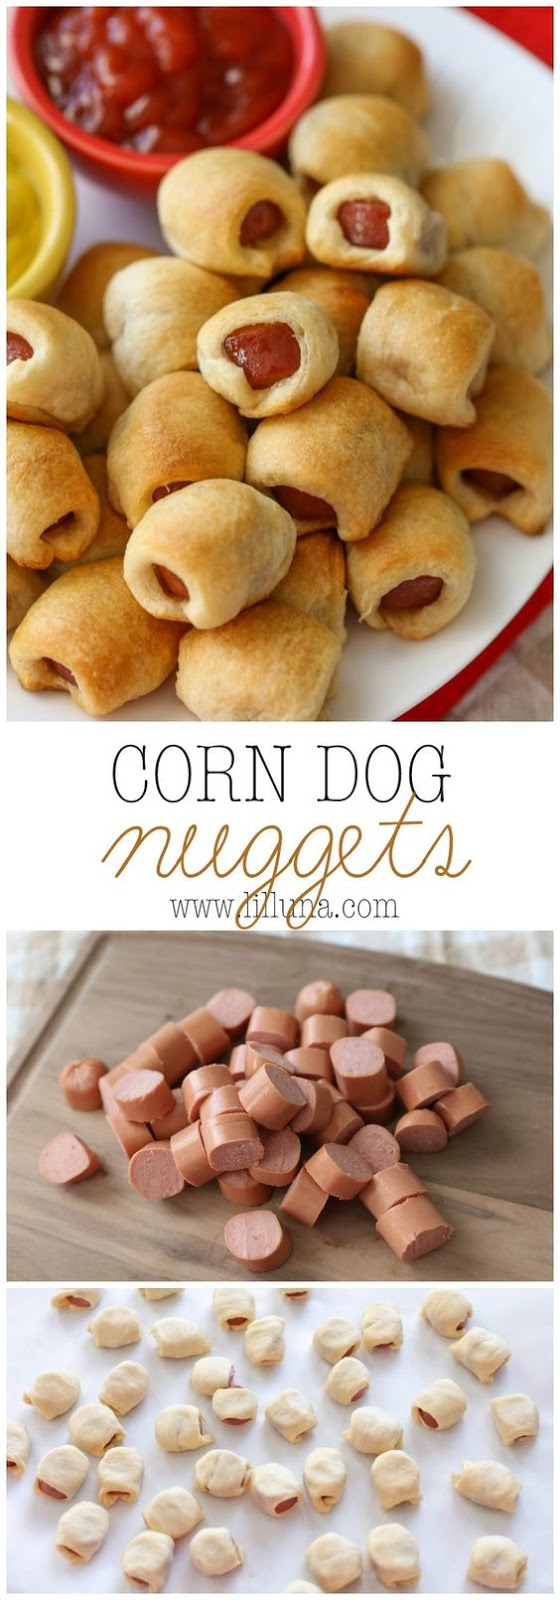 HOT DOG NUGGETS #recipes #lunchrecipes #food #foodporn #healthy #yummy #instafood #foodie #delicious #dinner #breakfast #yum #lunch #vegan #cake #eatclean #homemade #diet #healthyfood #cleaneating #foodstagram